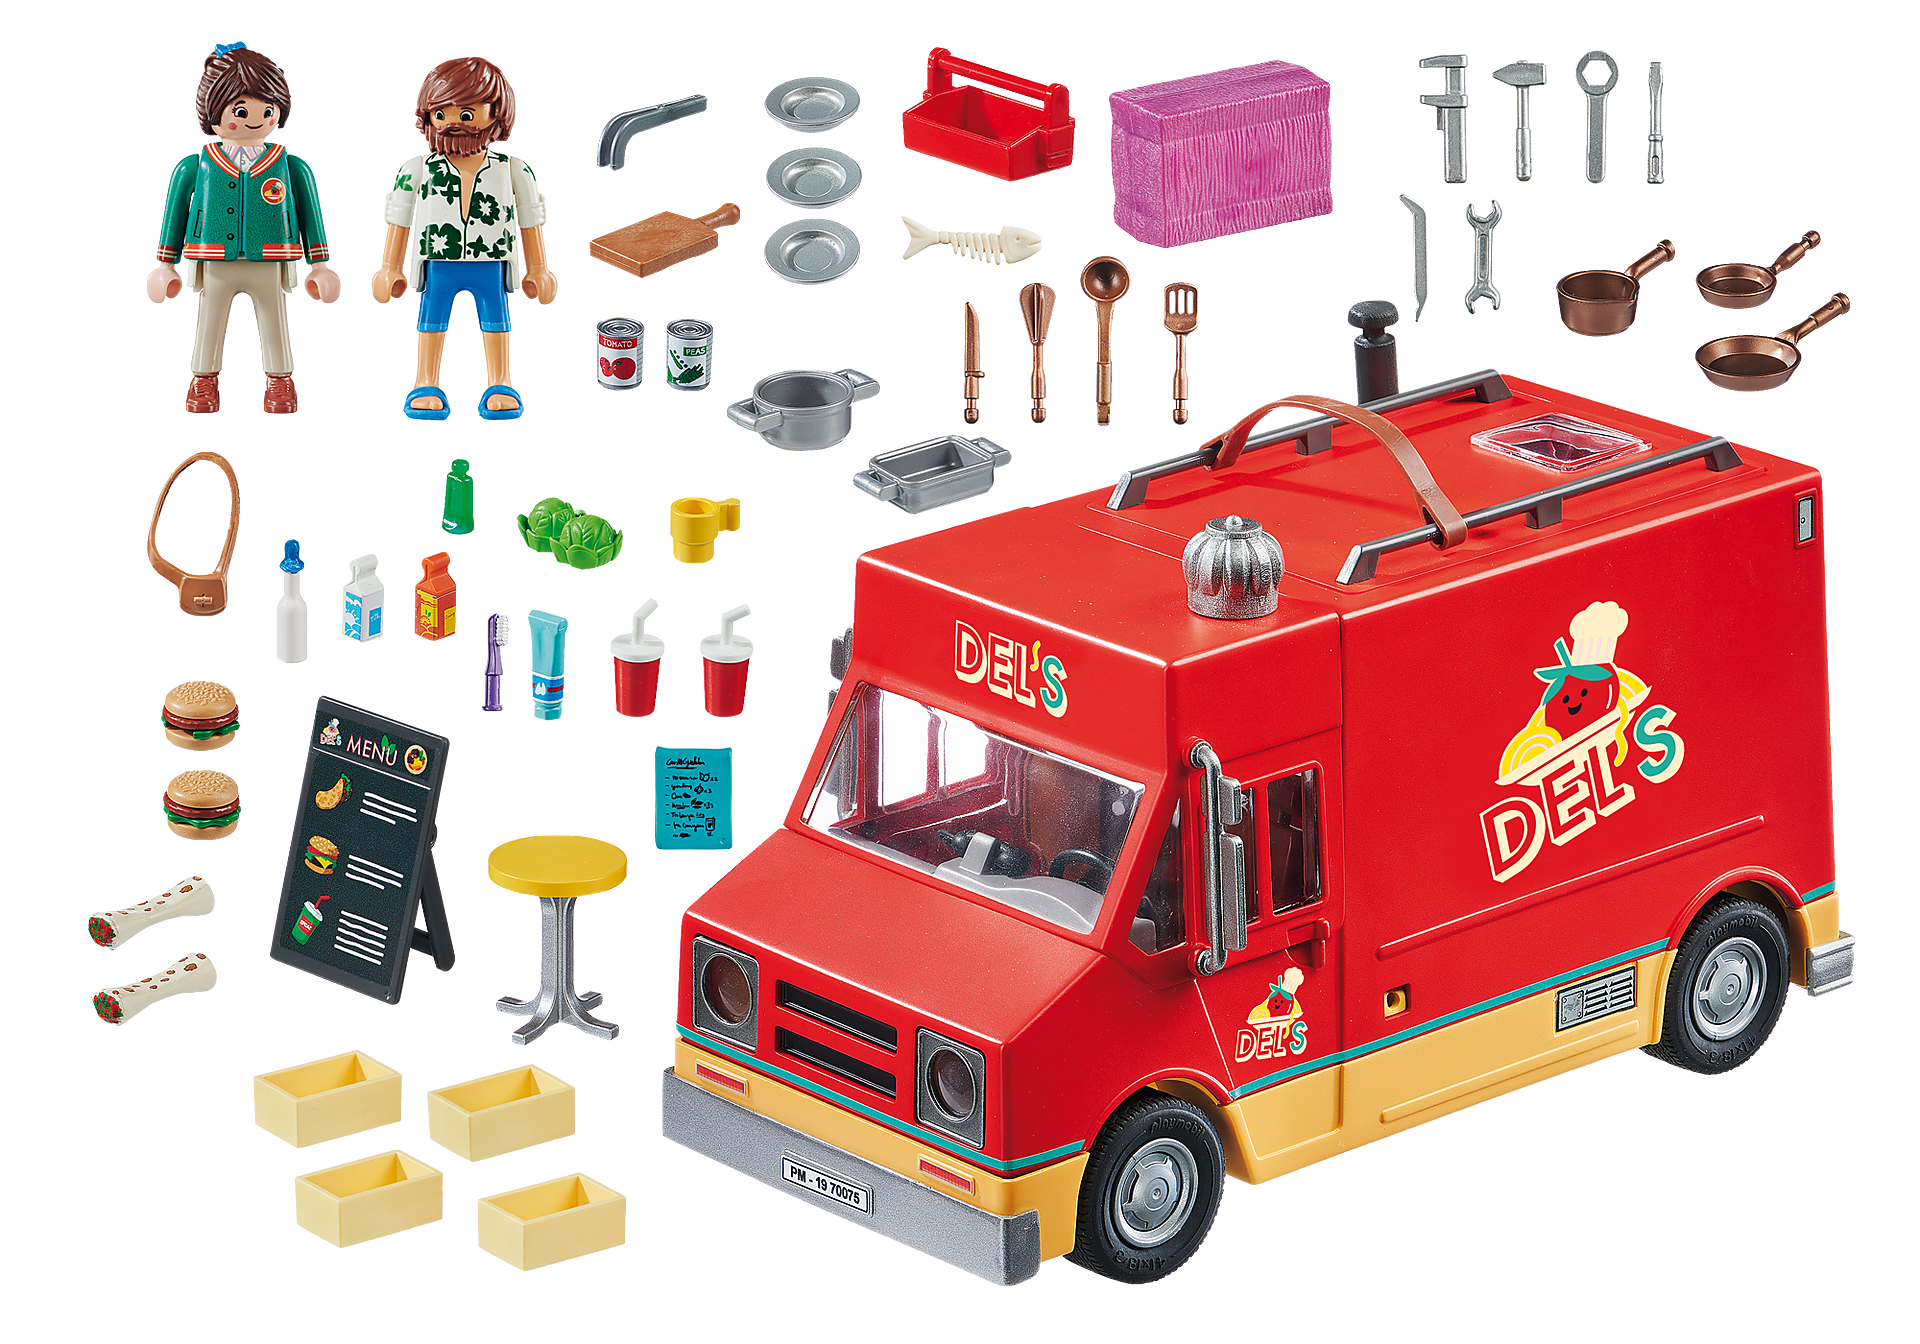 70075 PLAYMOBIL. THE MOVIE Carrinha da Comida do Del zoom image3